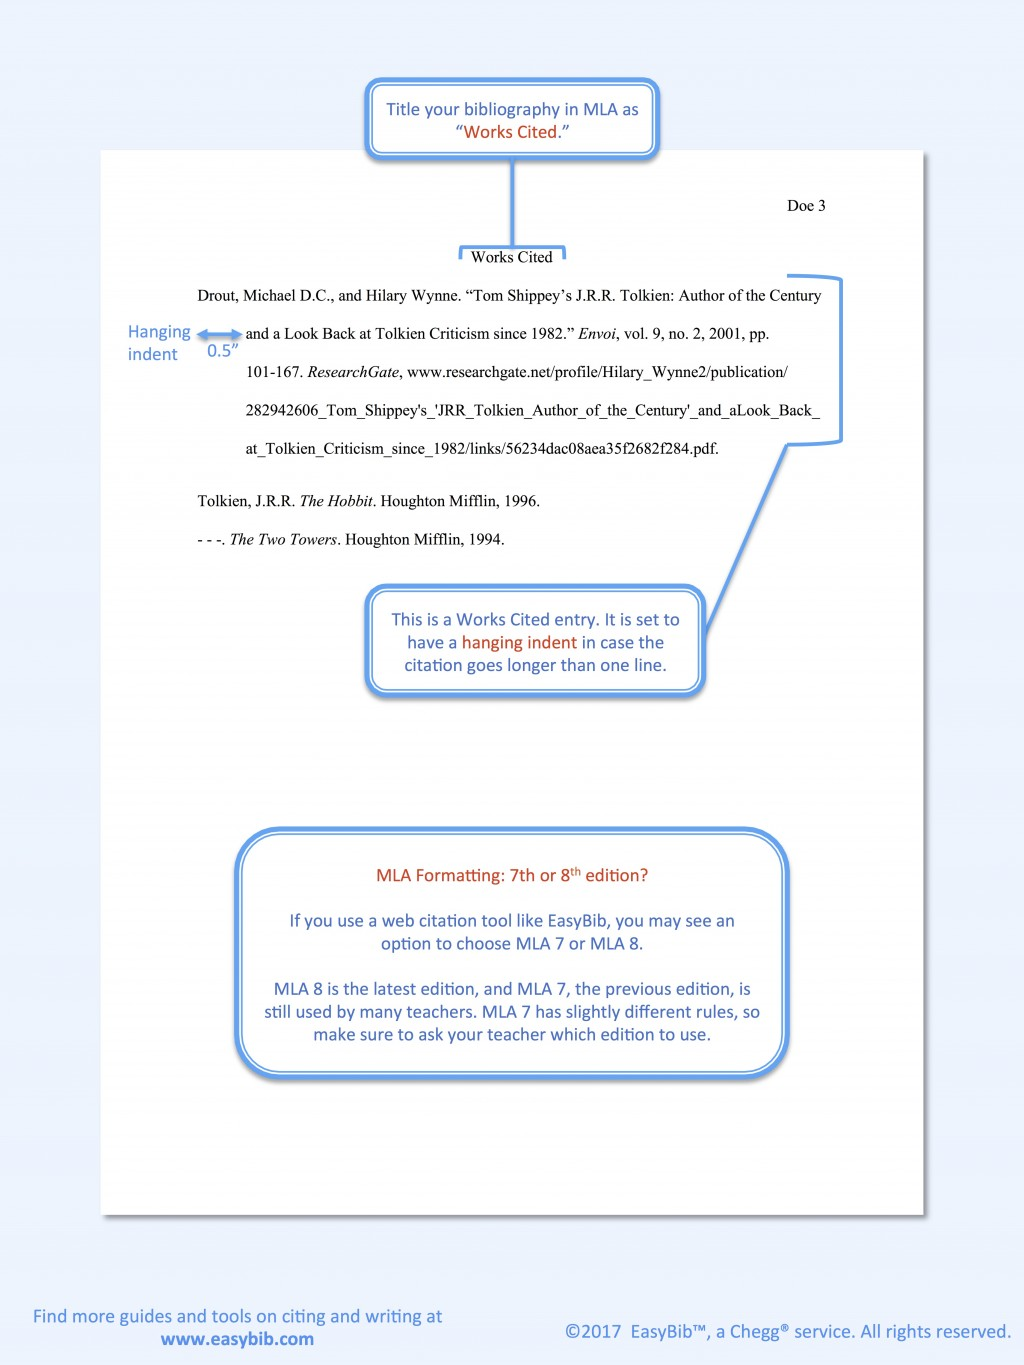 014 Model Mla Paper Research Fascinating Layout Sample Pdf About Business Format Word 2010 Large